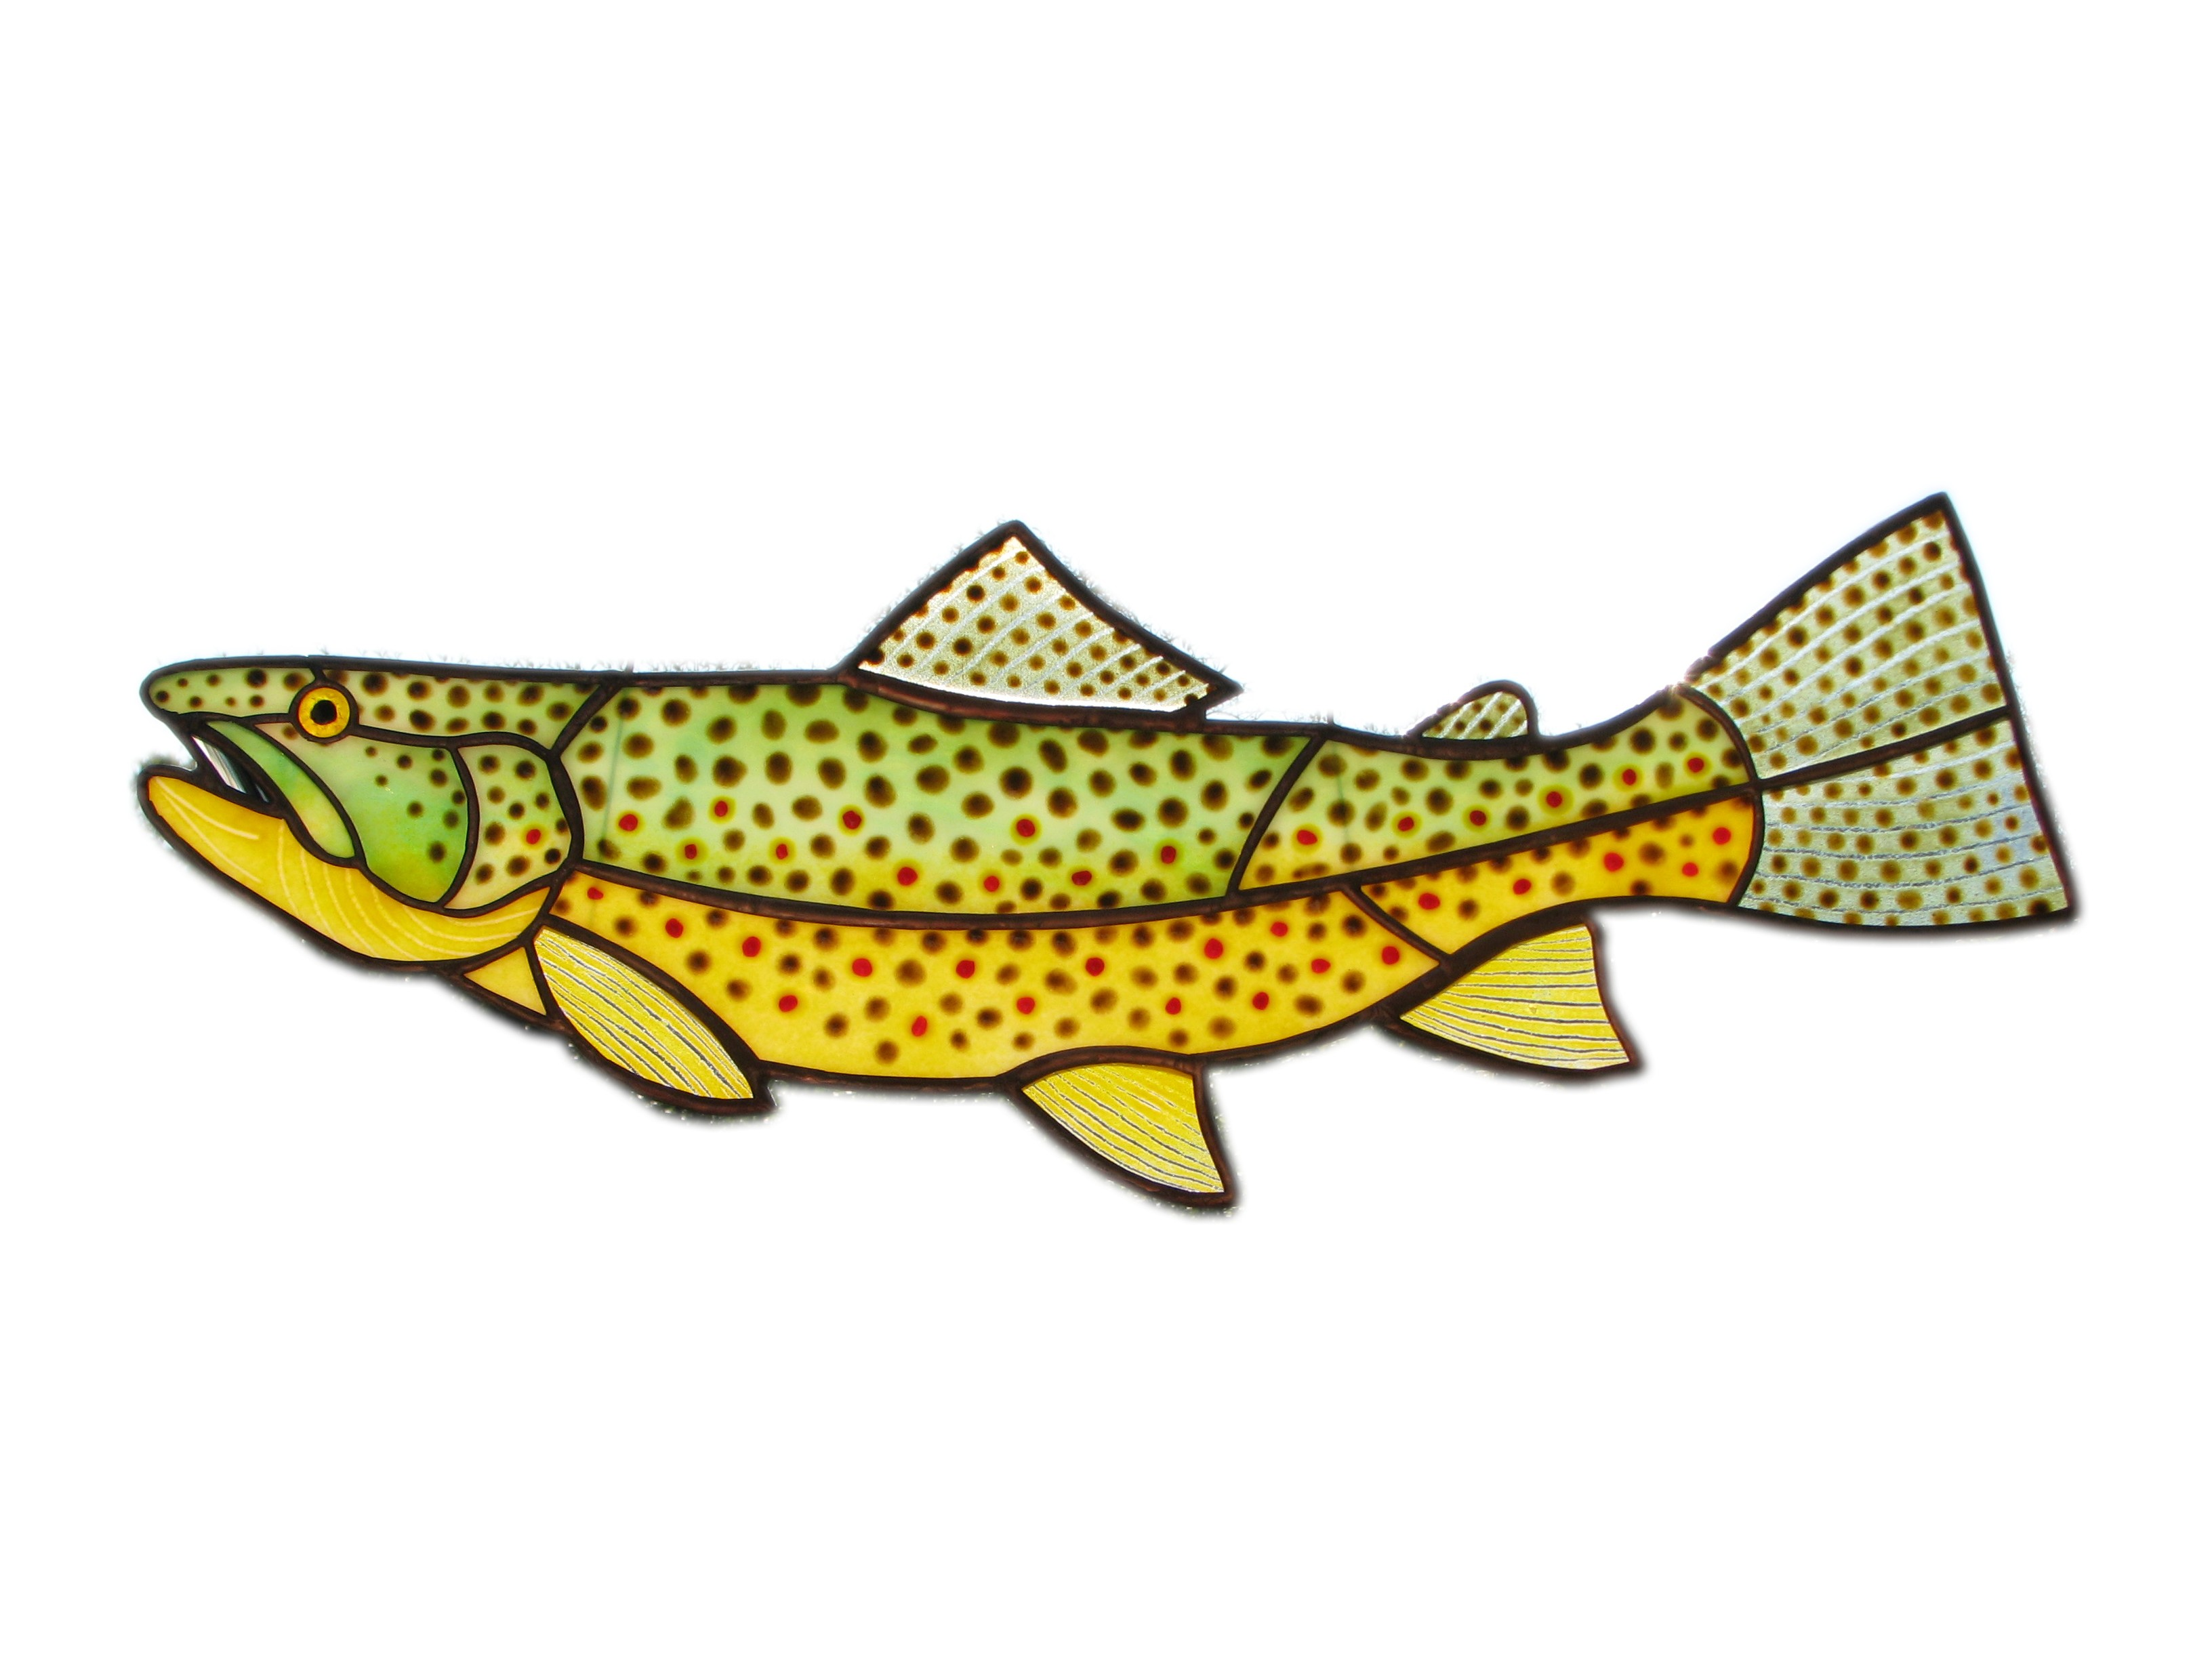 3264x2448 Fresh Water Fish, Stained Glass Art